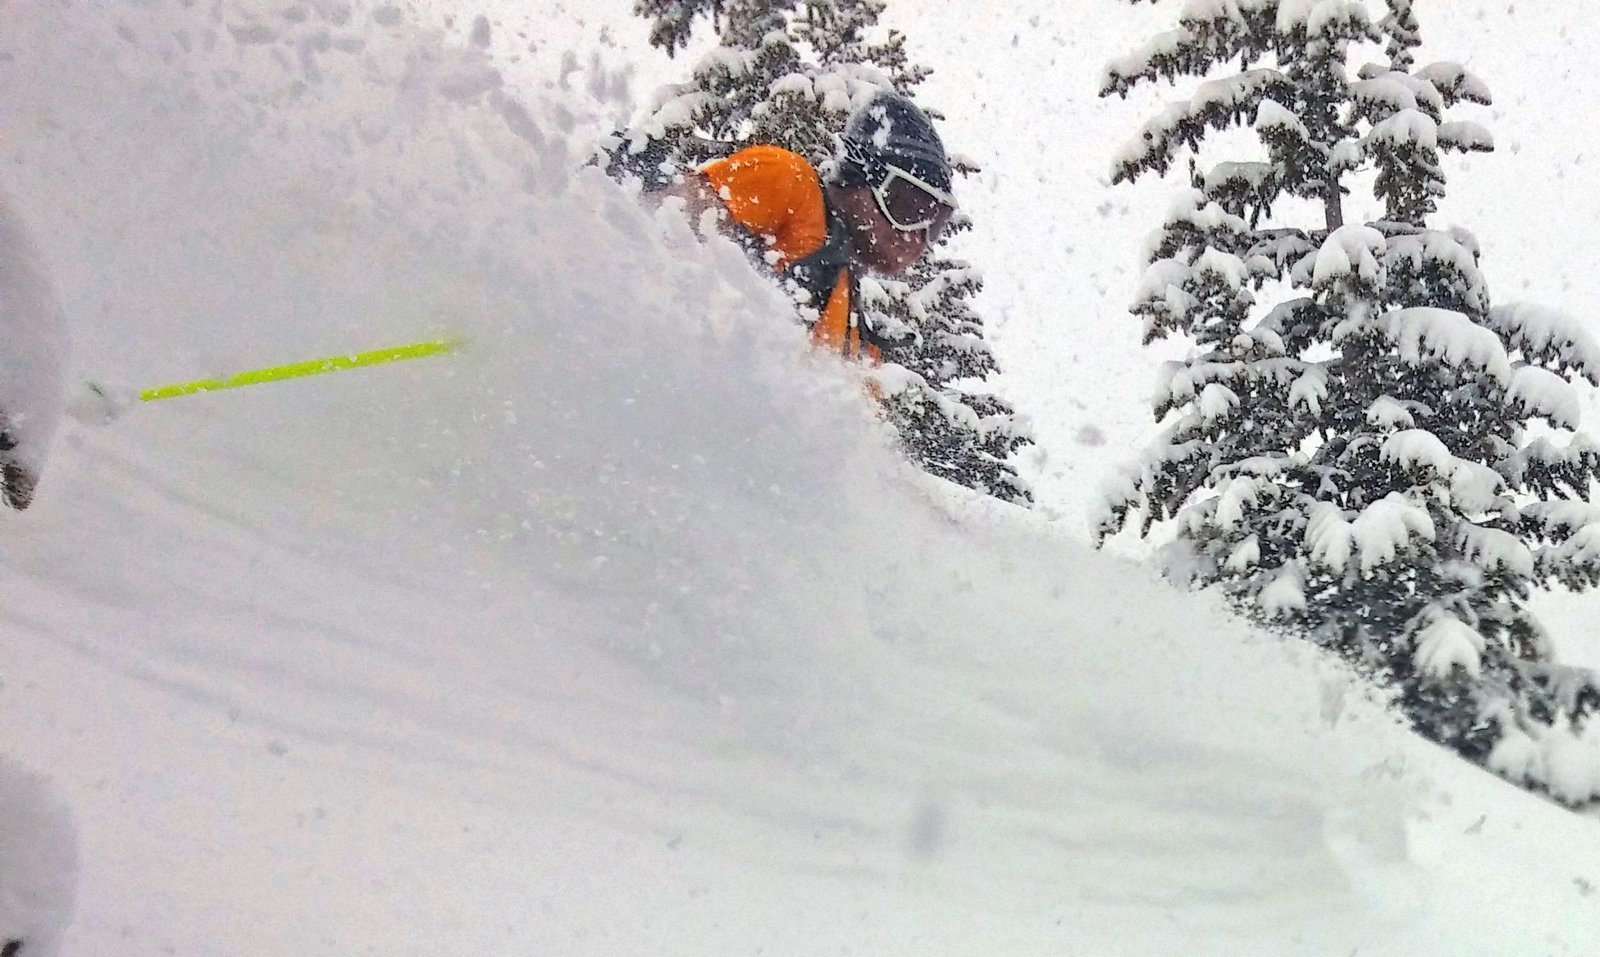 More Pow turns in May